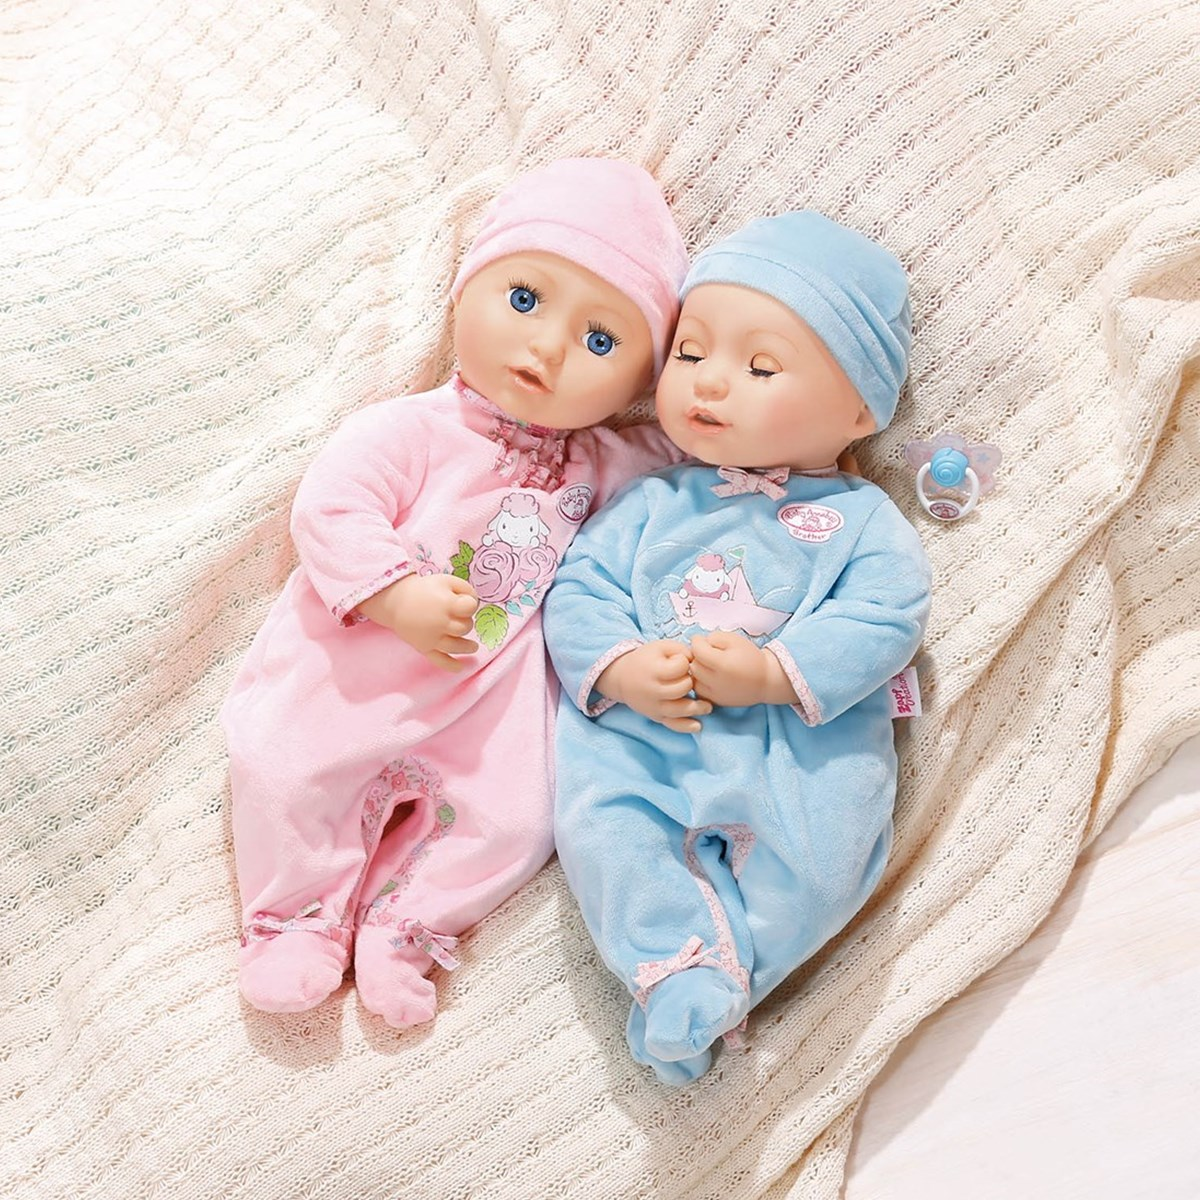 Baby Annabell - Baby Annabell Doll - Babyshop.com